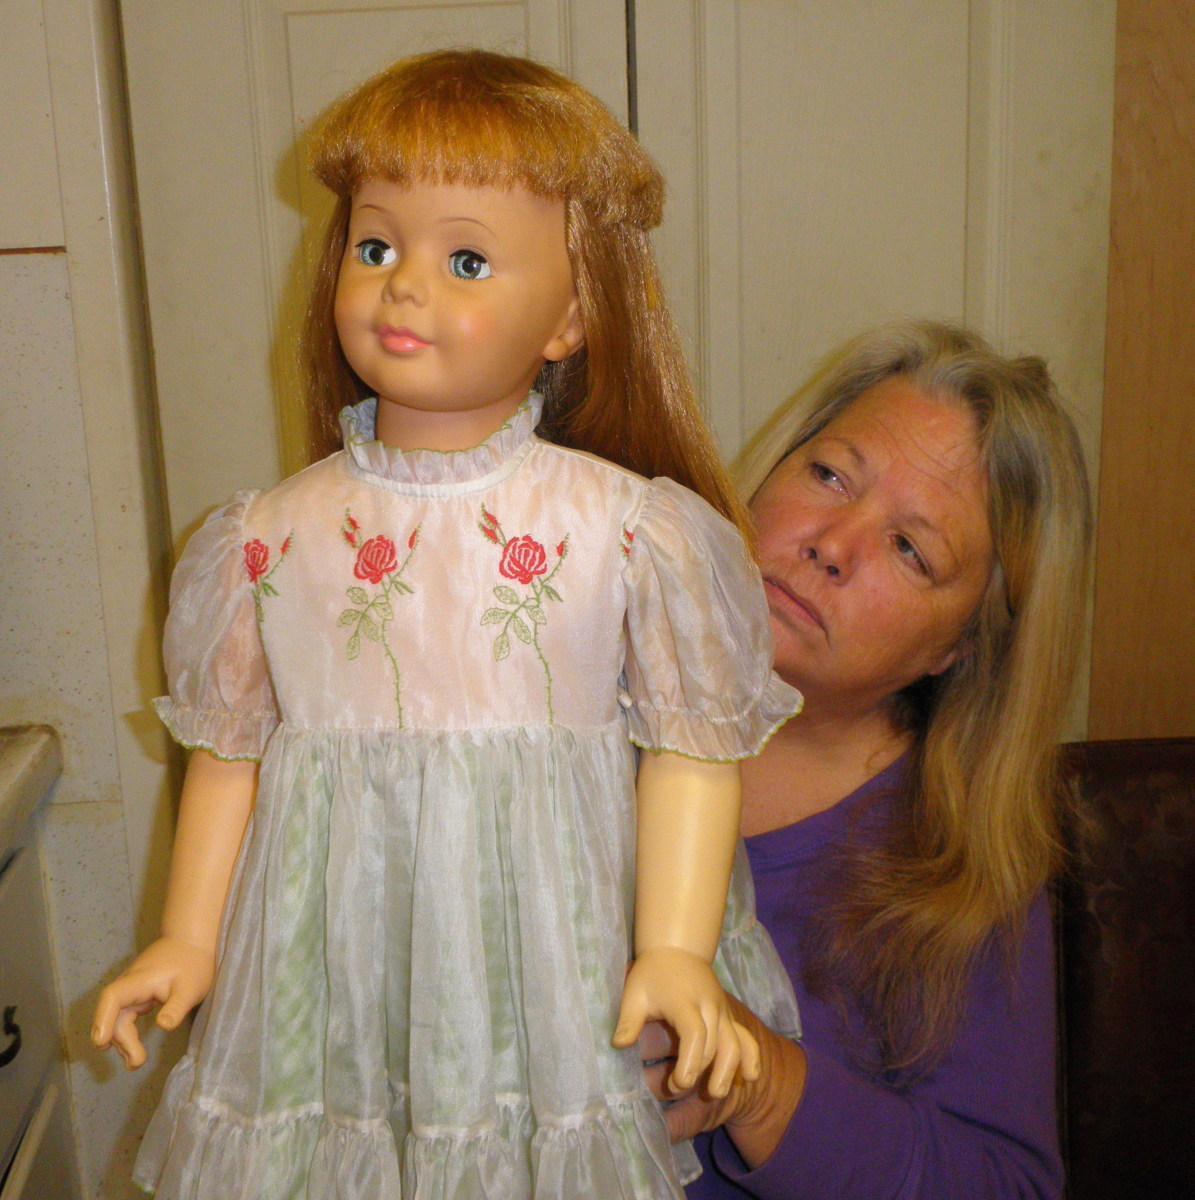 Patti Playpal dolls are highly collectible. Introduced in the 1950s, these companion dolls were the favorites of many little girls.